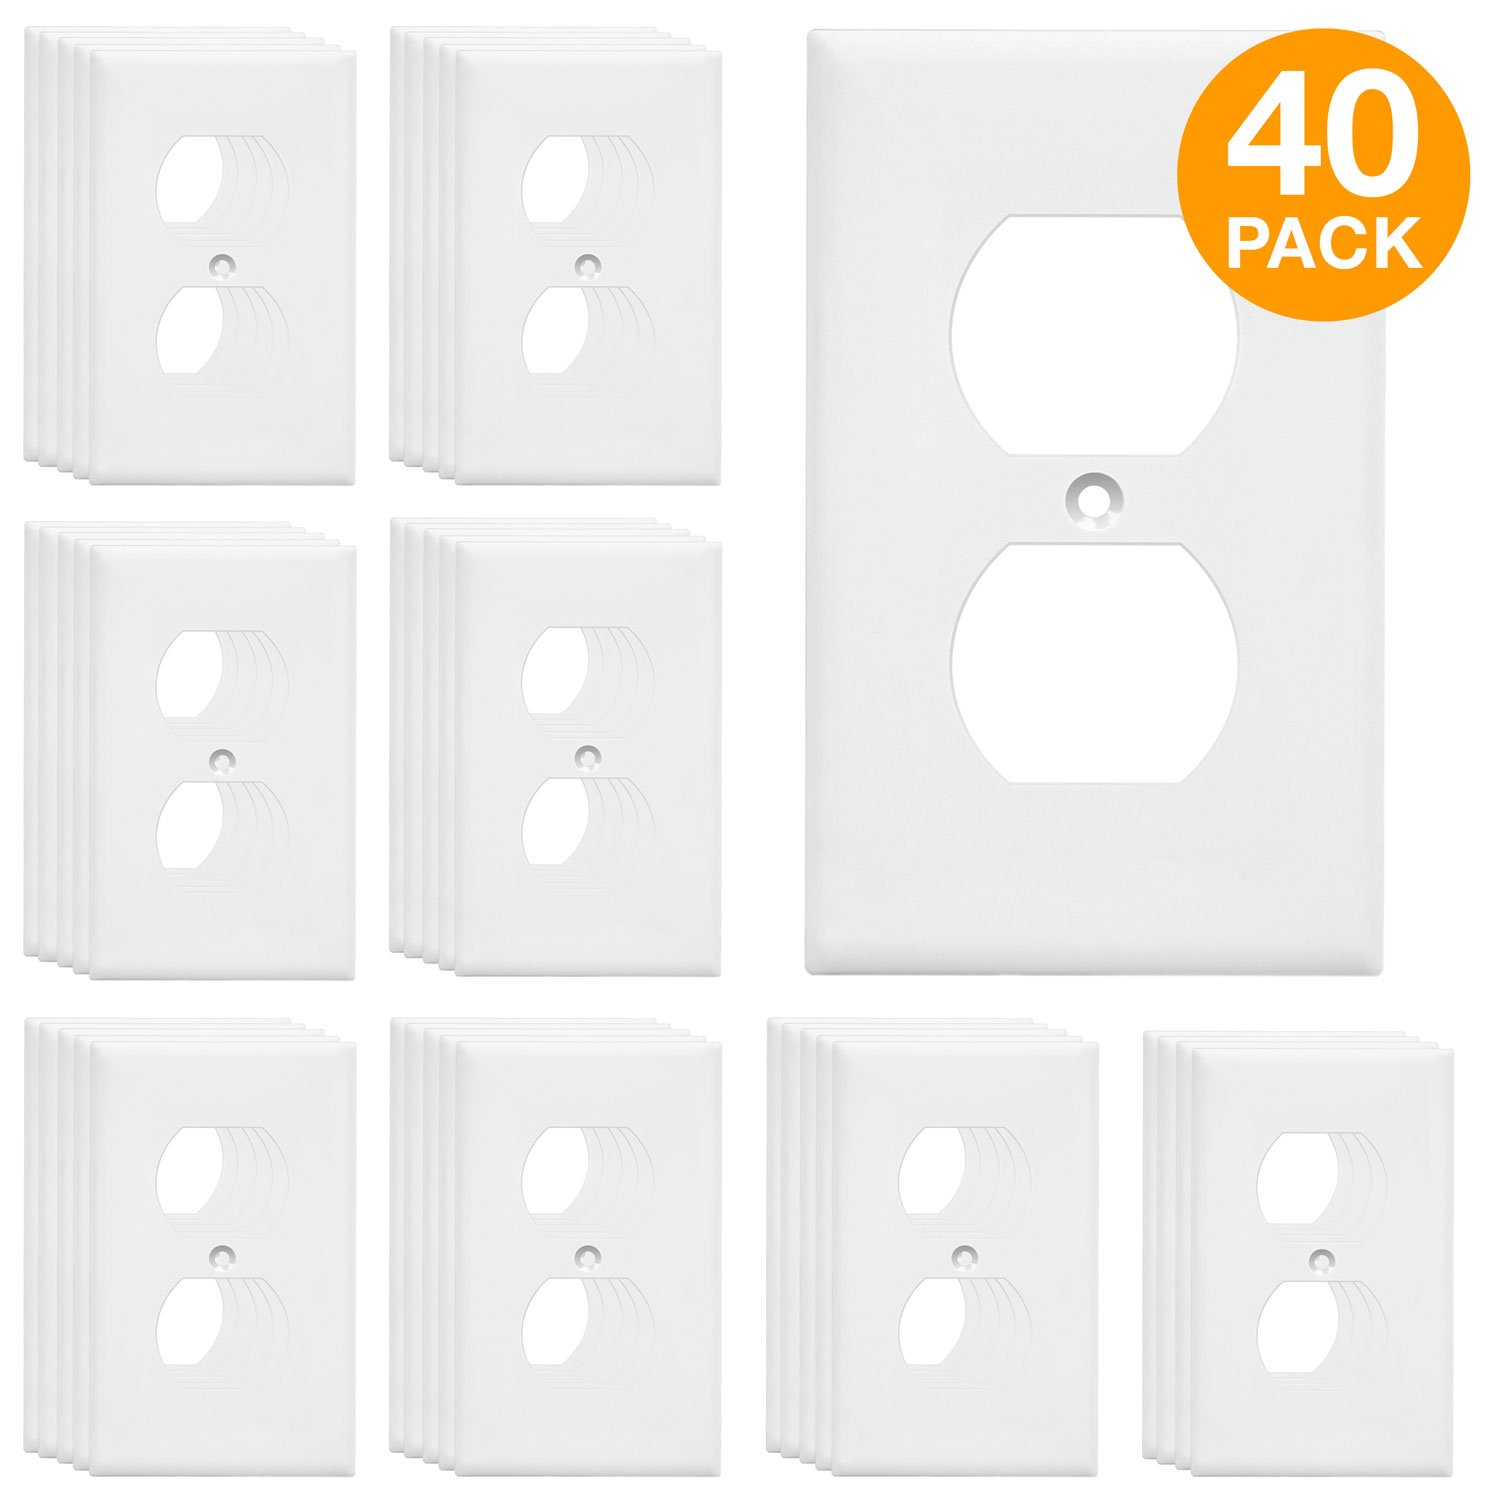 ENERLITES Duplex Receptacle Outlet Wall Plate, Size 1-Gang 4.50'' x 2.76'', Unbreakable Polycarbonate Thermoplastic, UL Listed, 8821-W-40PCS, White (40 Pack) by ENERLITES